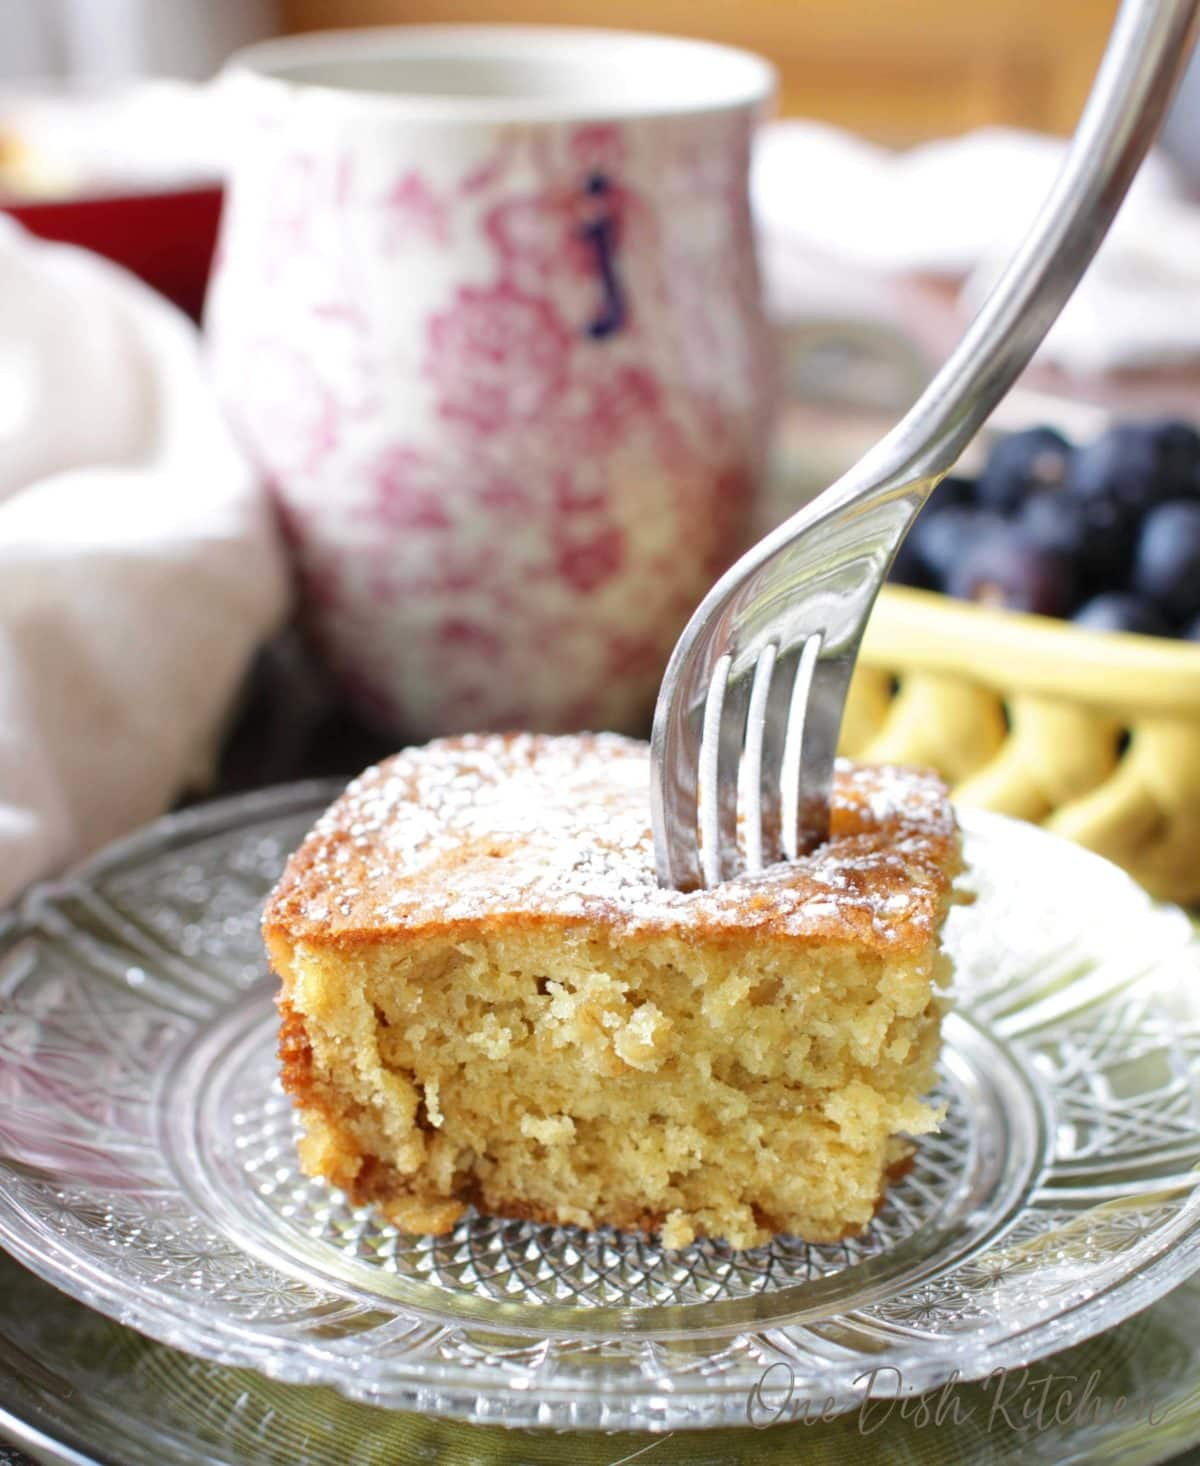 A fork piercing the top of a slice of orange oatmeal cake topped with powdered sugar next to a coffee mug and a small bowl of blueberries